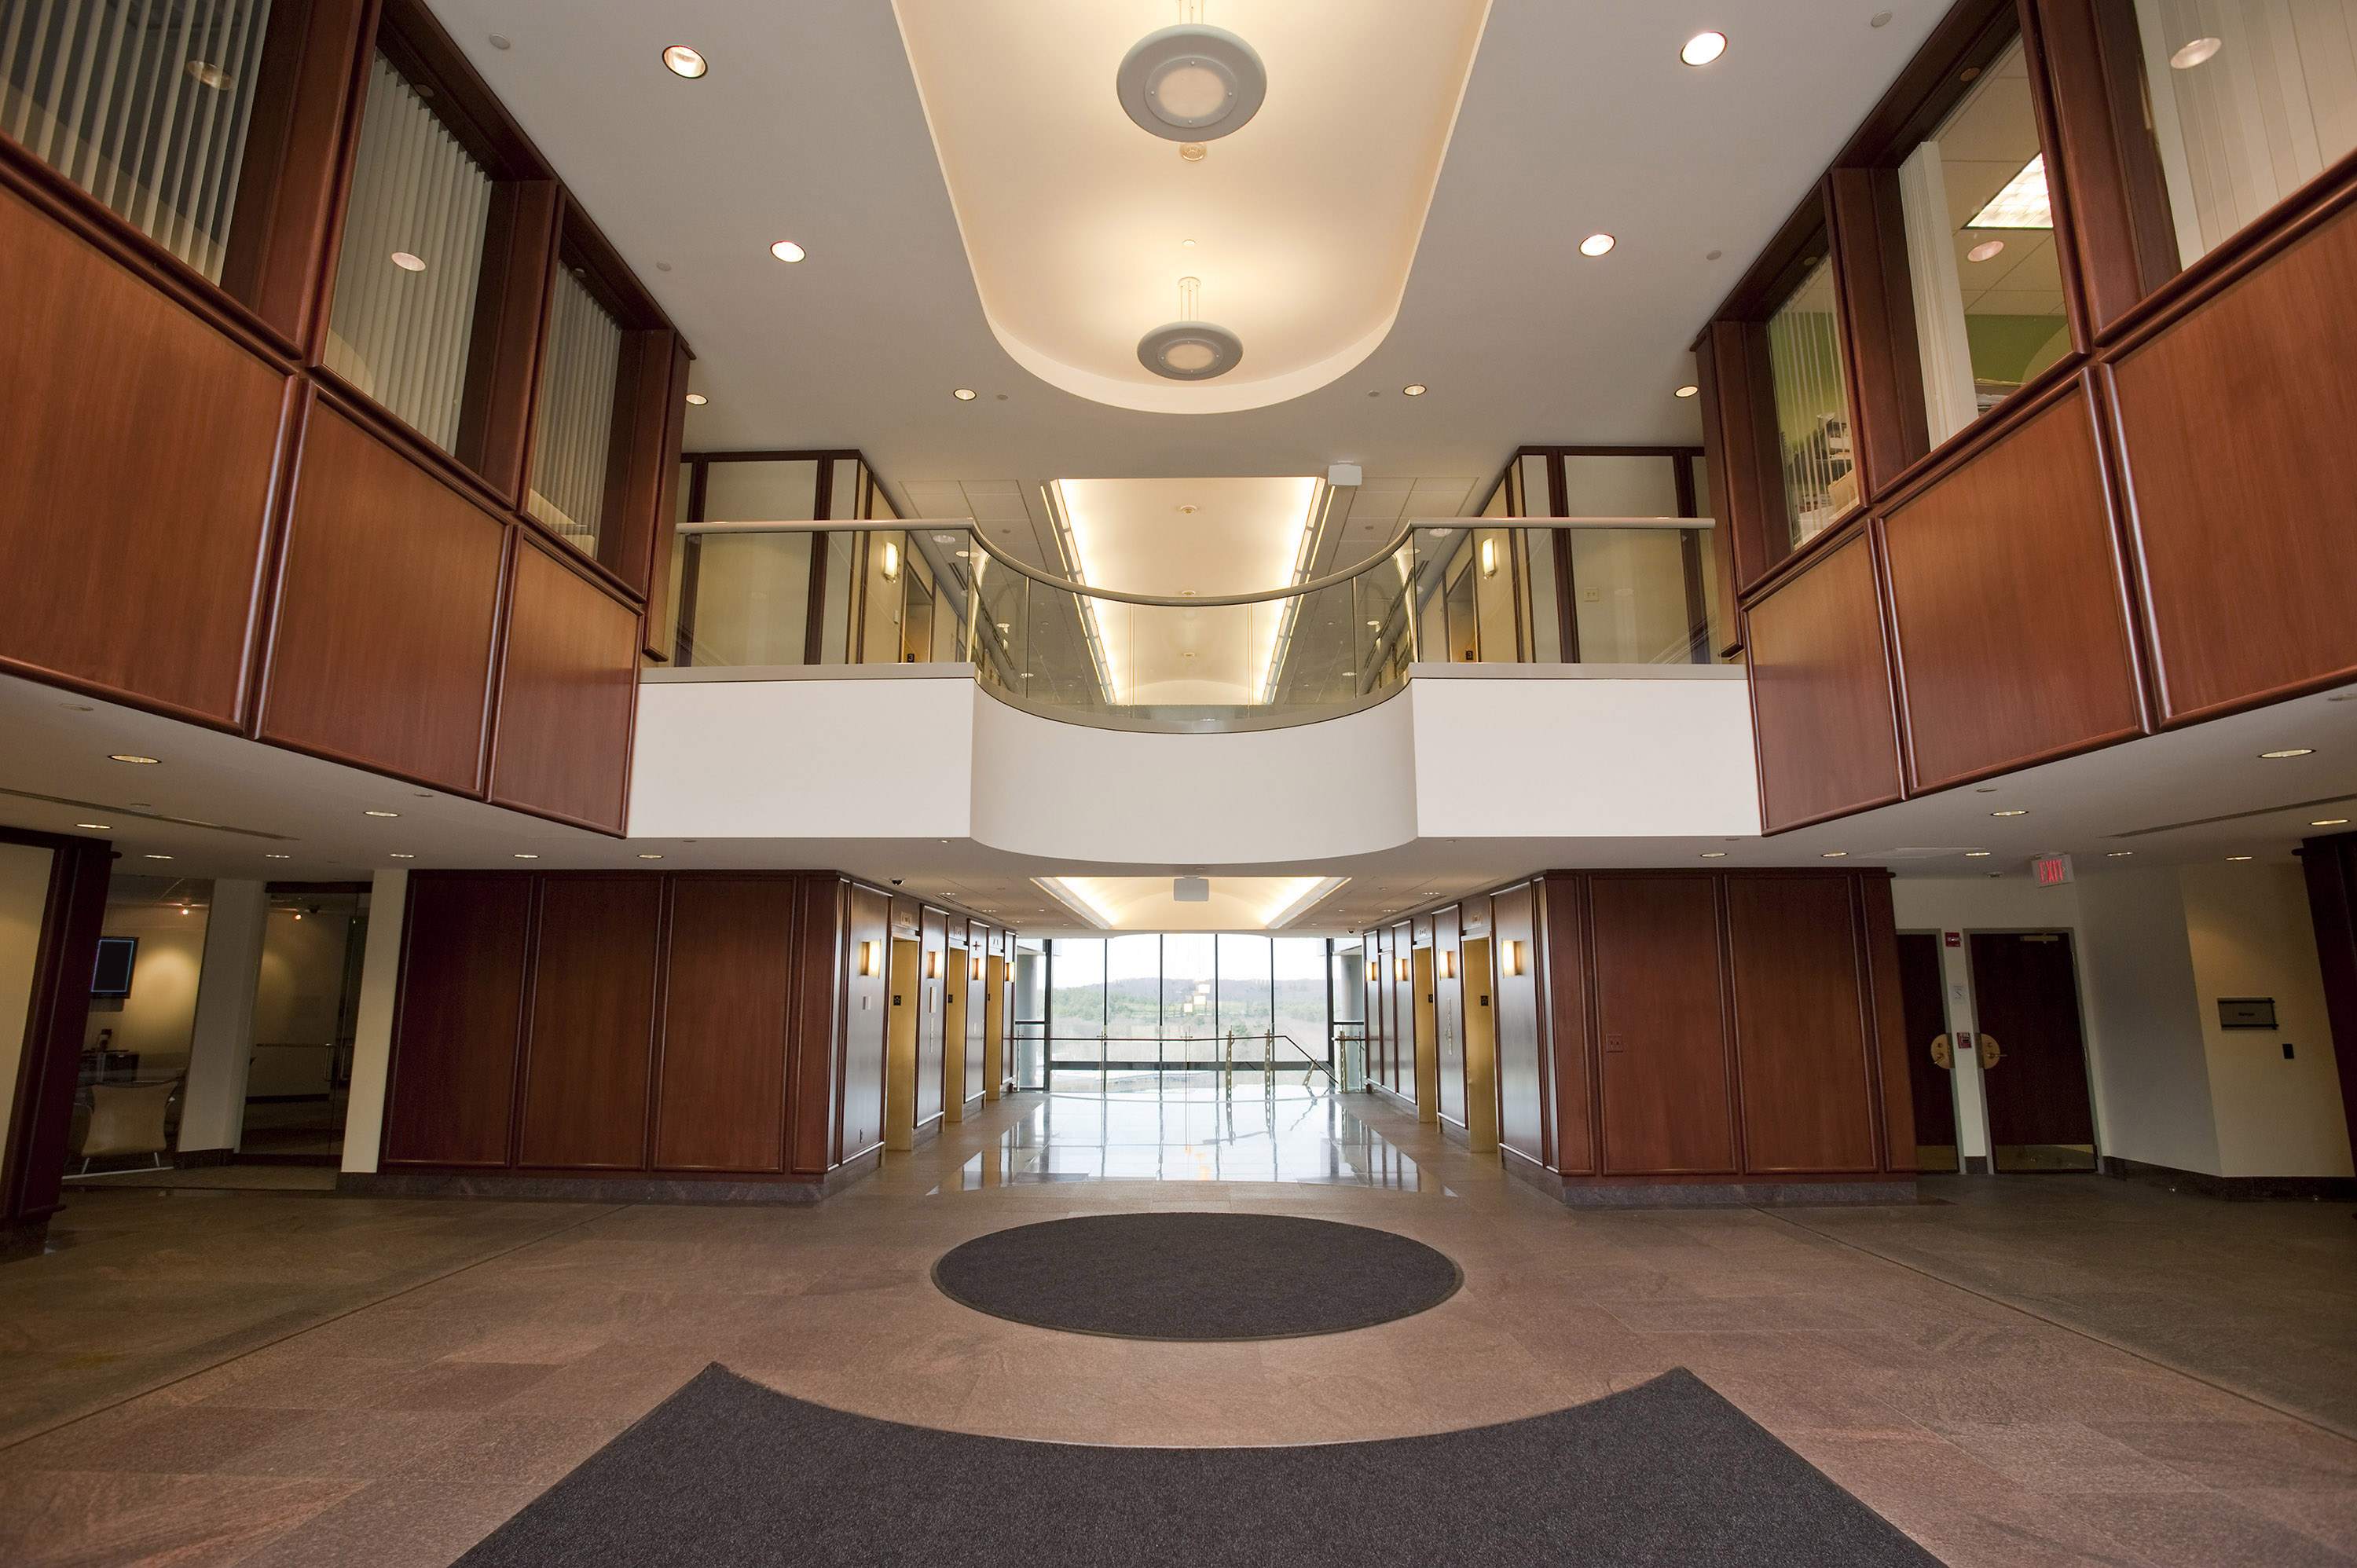 Caughlans Commercial Floor Covering - Mahogany Flooring in Modern Office Building